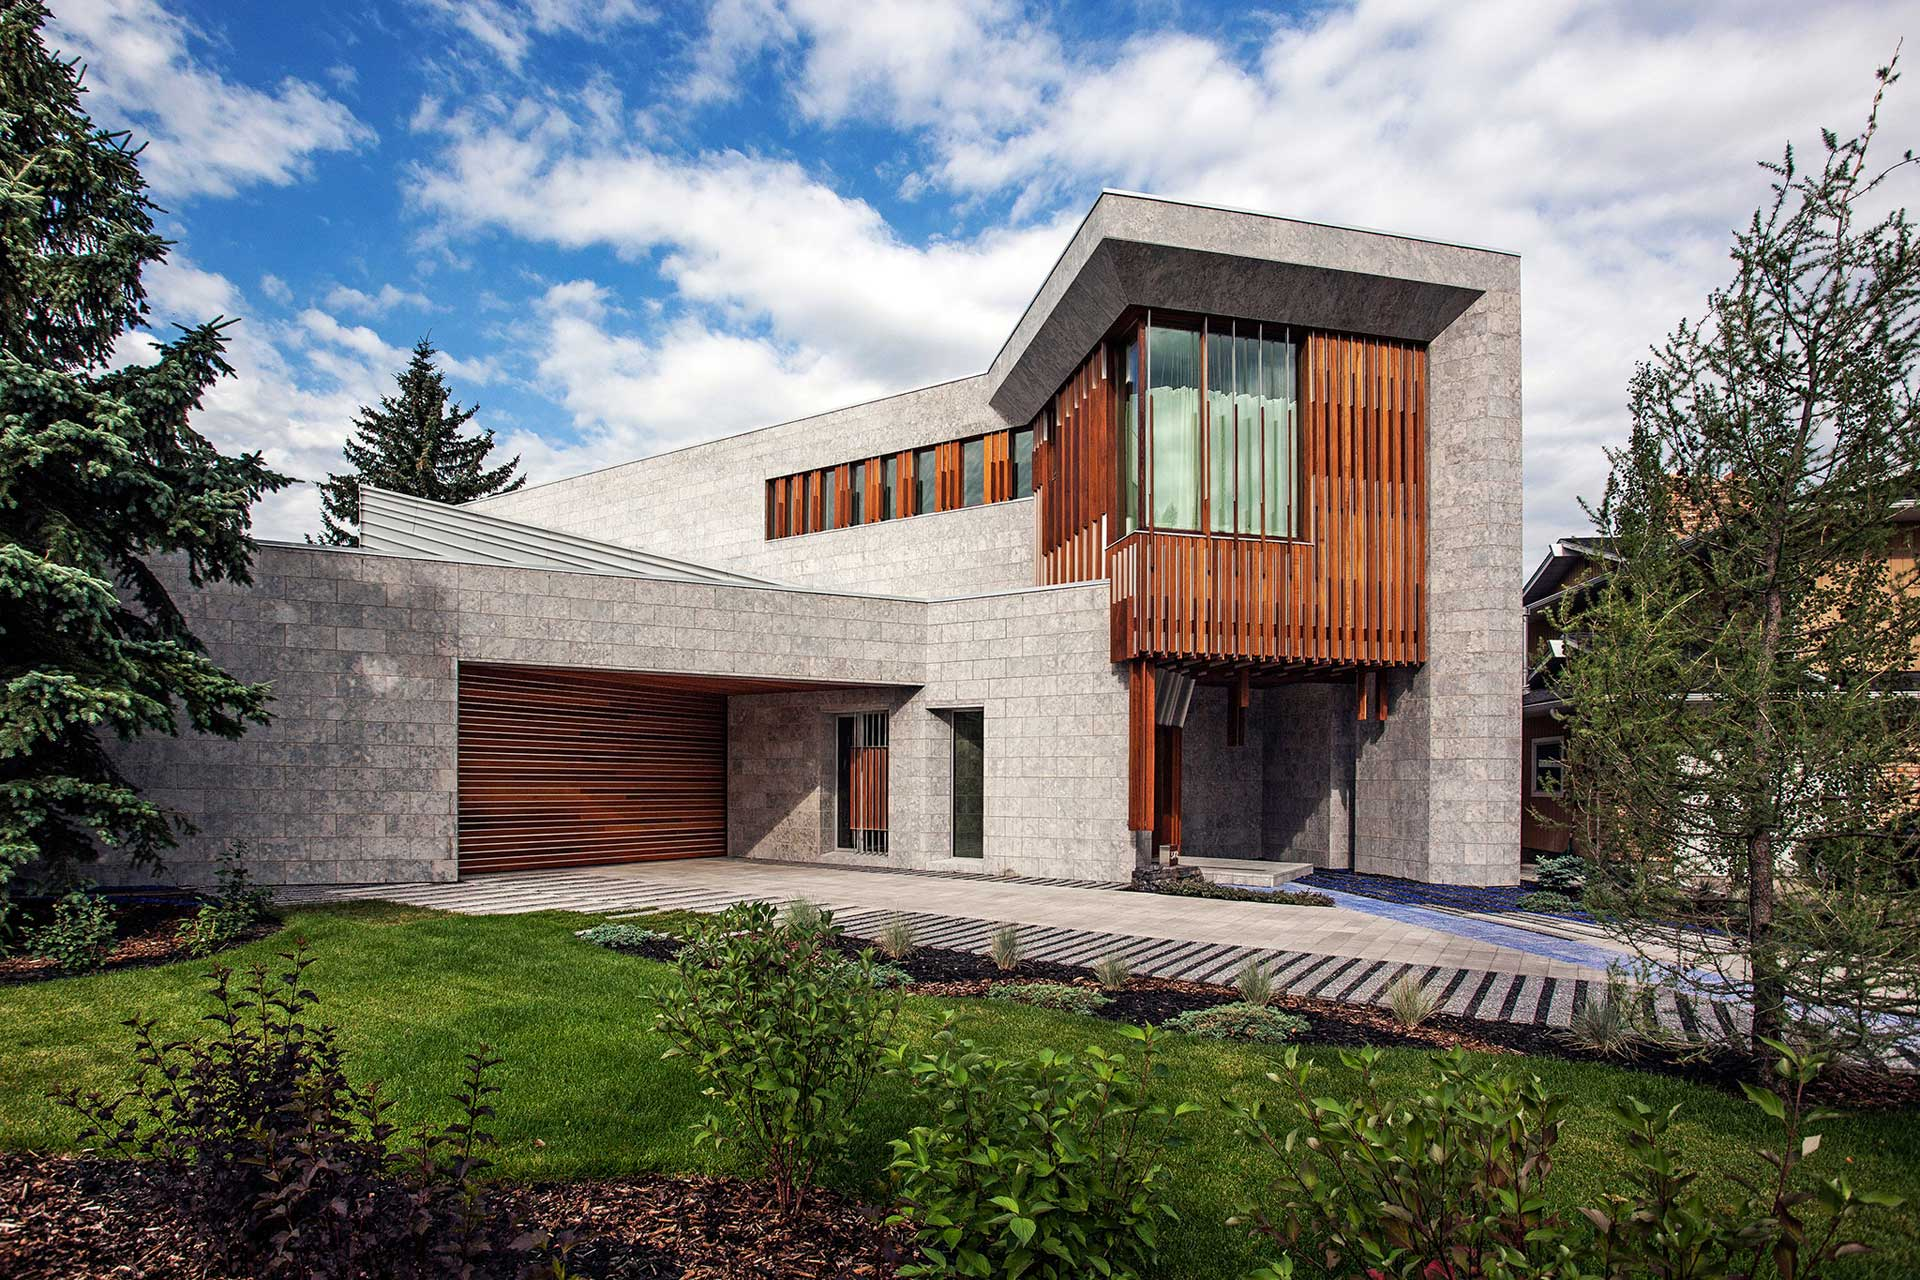 Concrete and wooden exterior of 2-story house